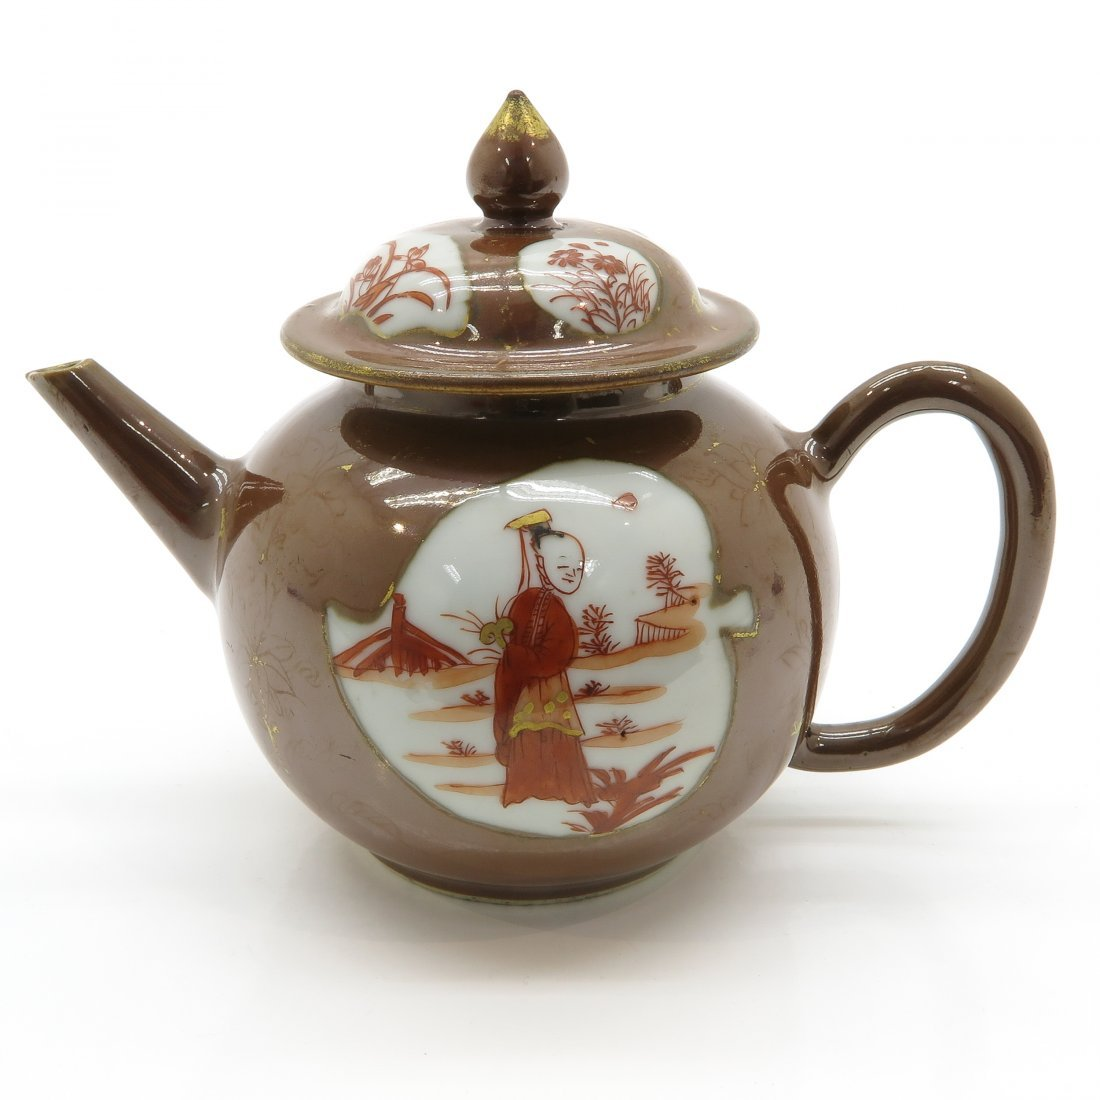 China Porcelain Teapot Circa 1800